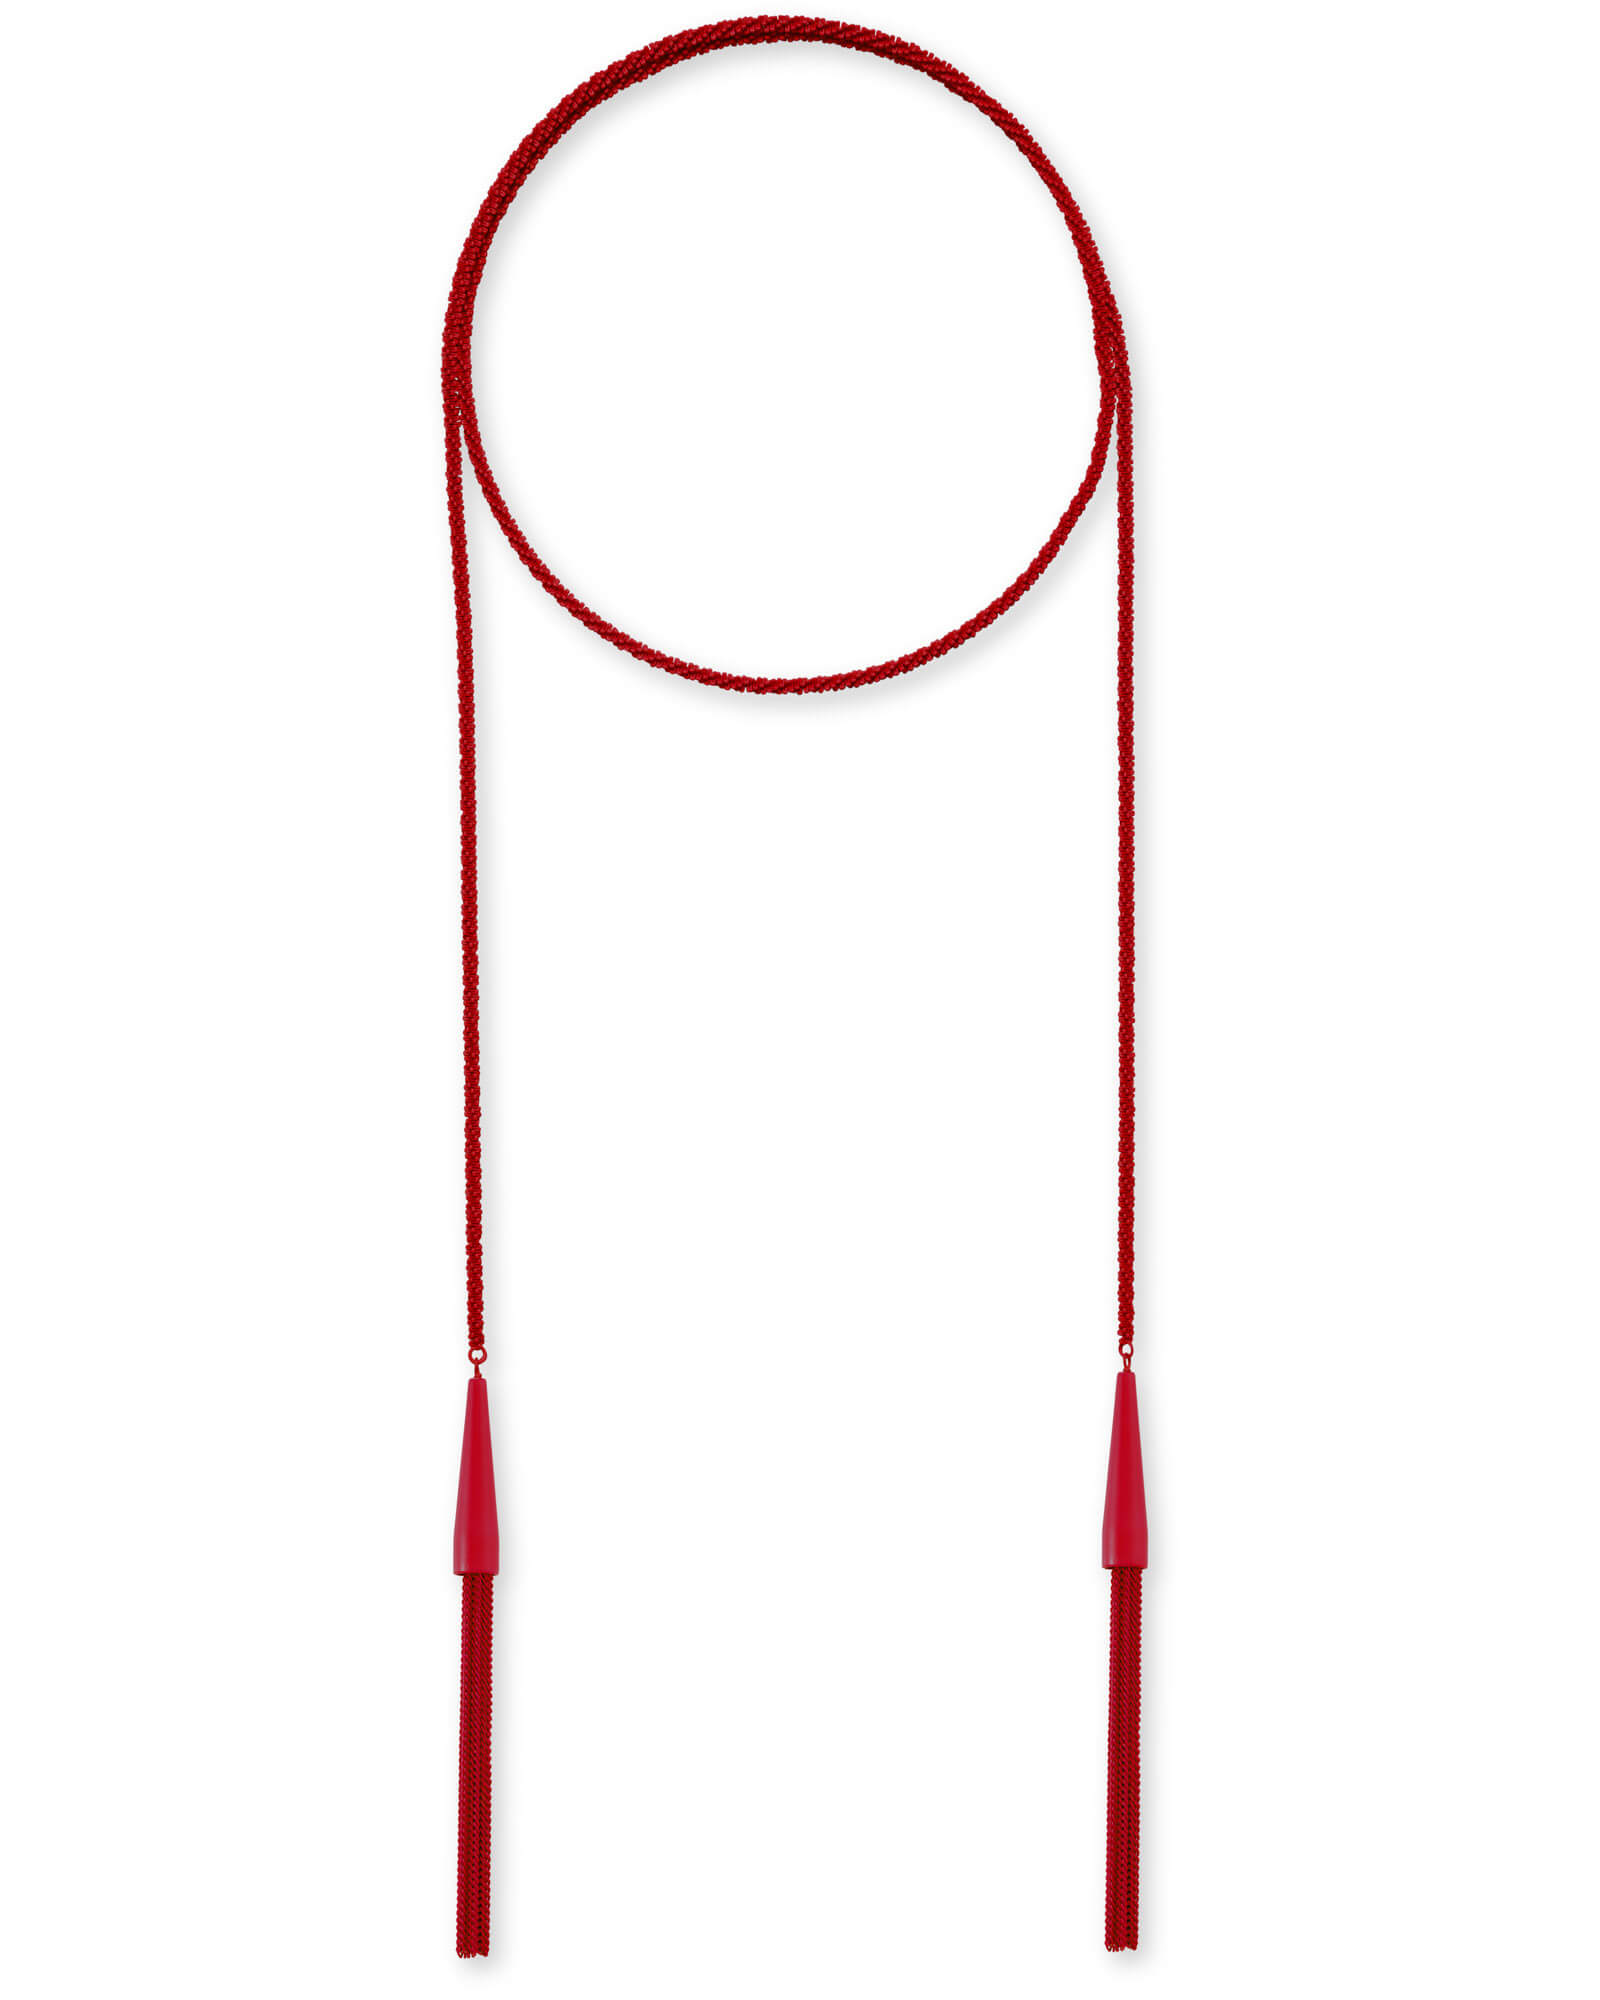 Phara Matte Lariat Necklace in Red